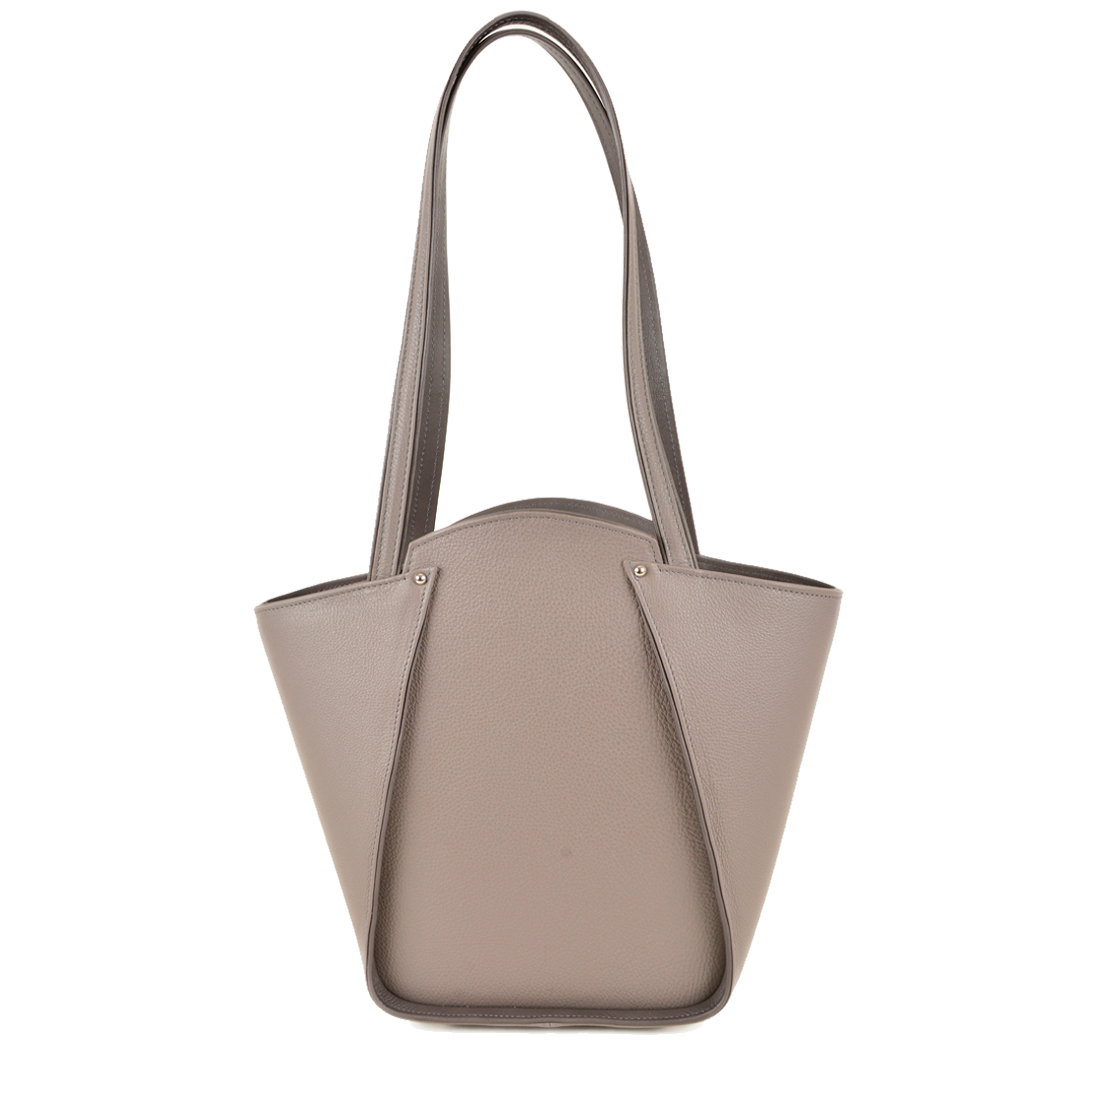 Greta Zinco Structured Leather Shoulder Bag